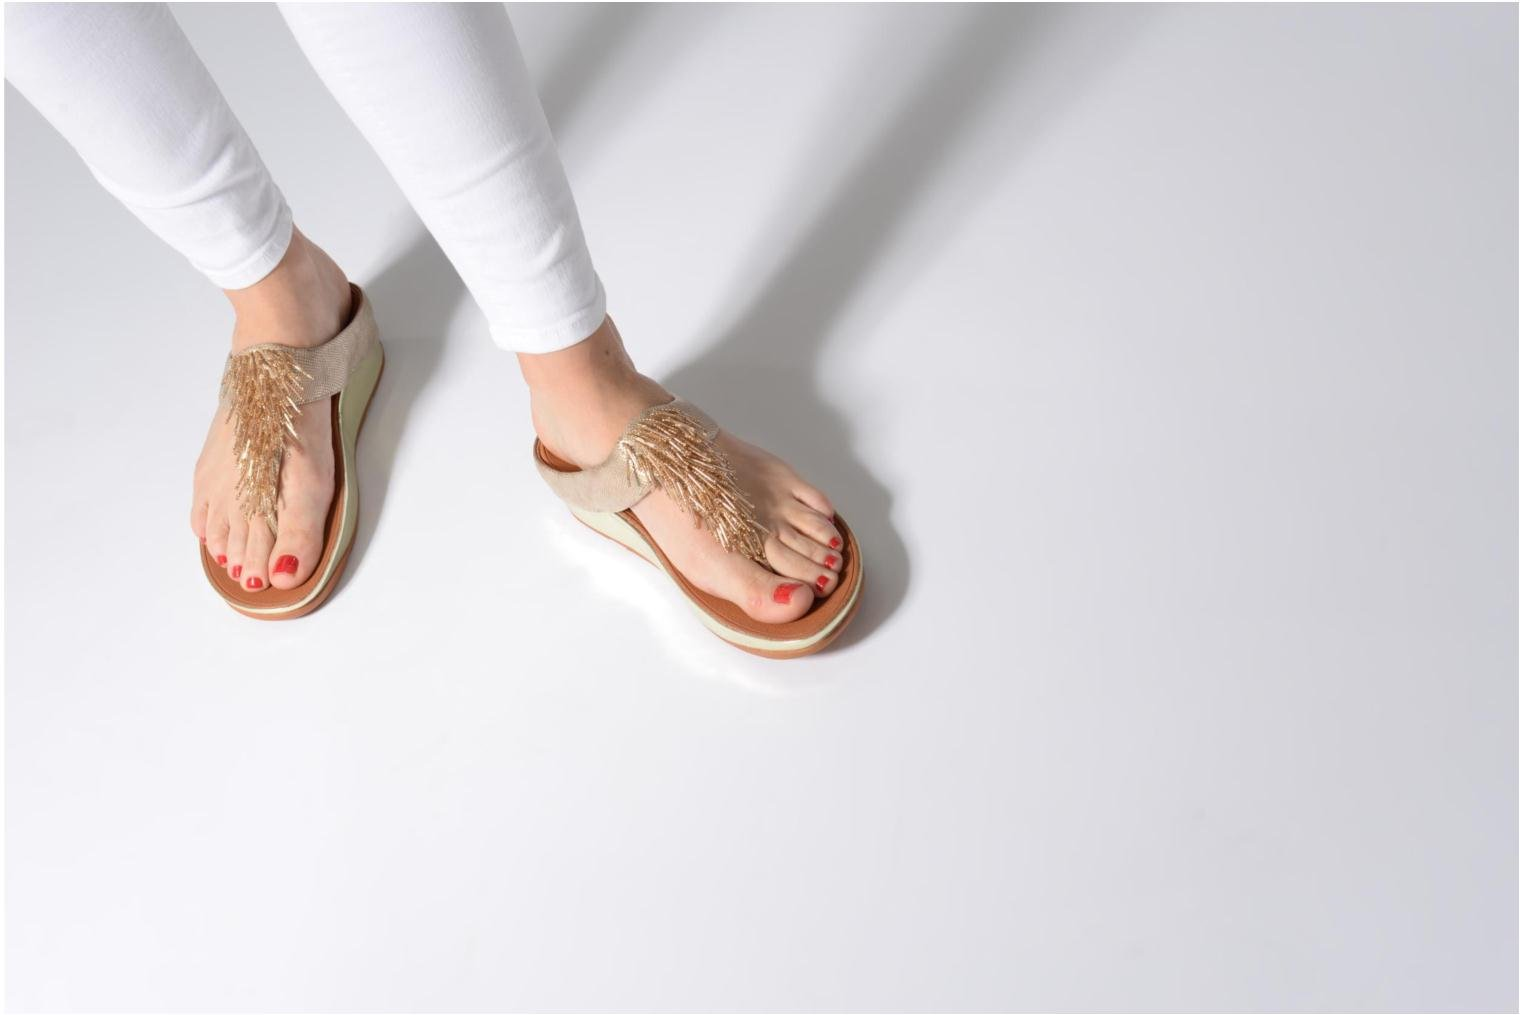 Zapatos promocionales FitFlop Cha Cha Shimmer (Oro y bronce